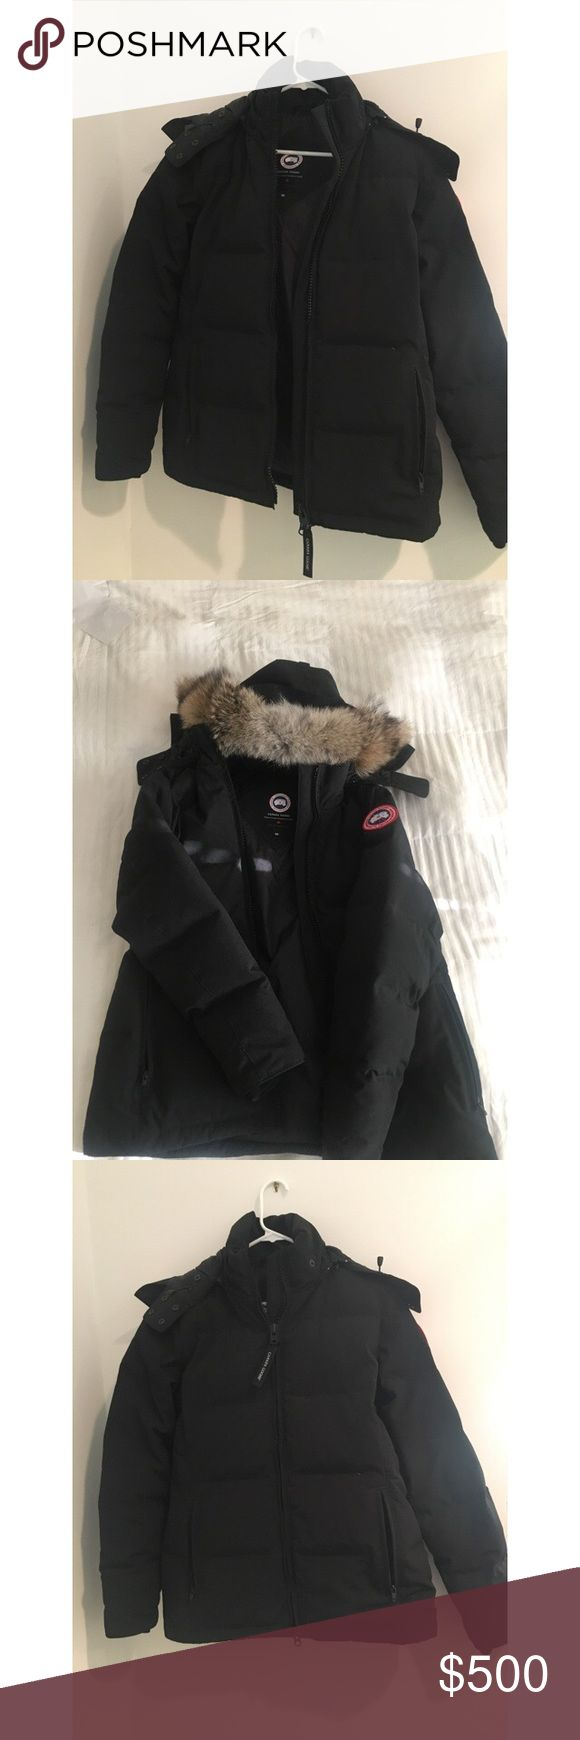 Canada Goose Women's Coat, EXCELLENT condition! Hardly worn*** Authentic Canada goose coat! Perfect for winter weather and sports! Canada Goose Jackets & Coats